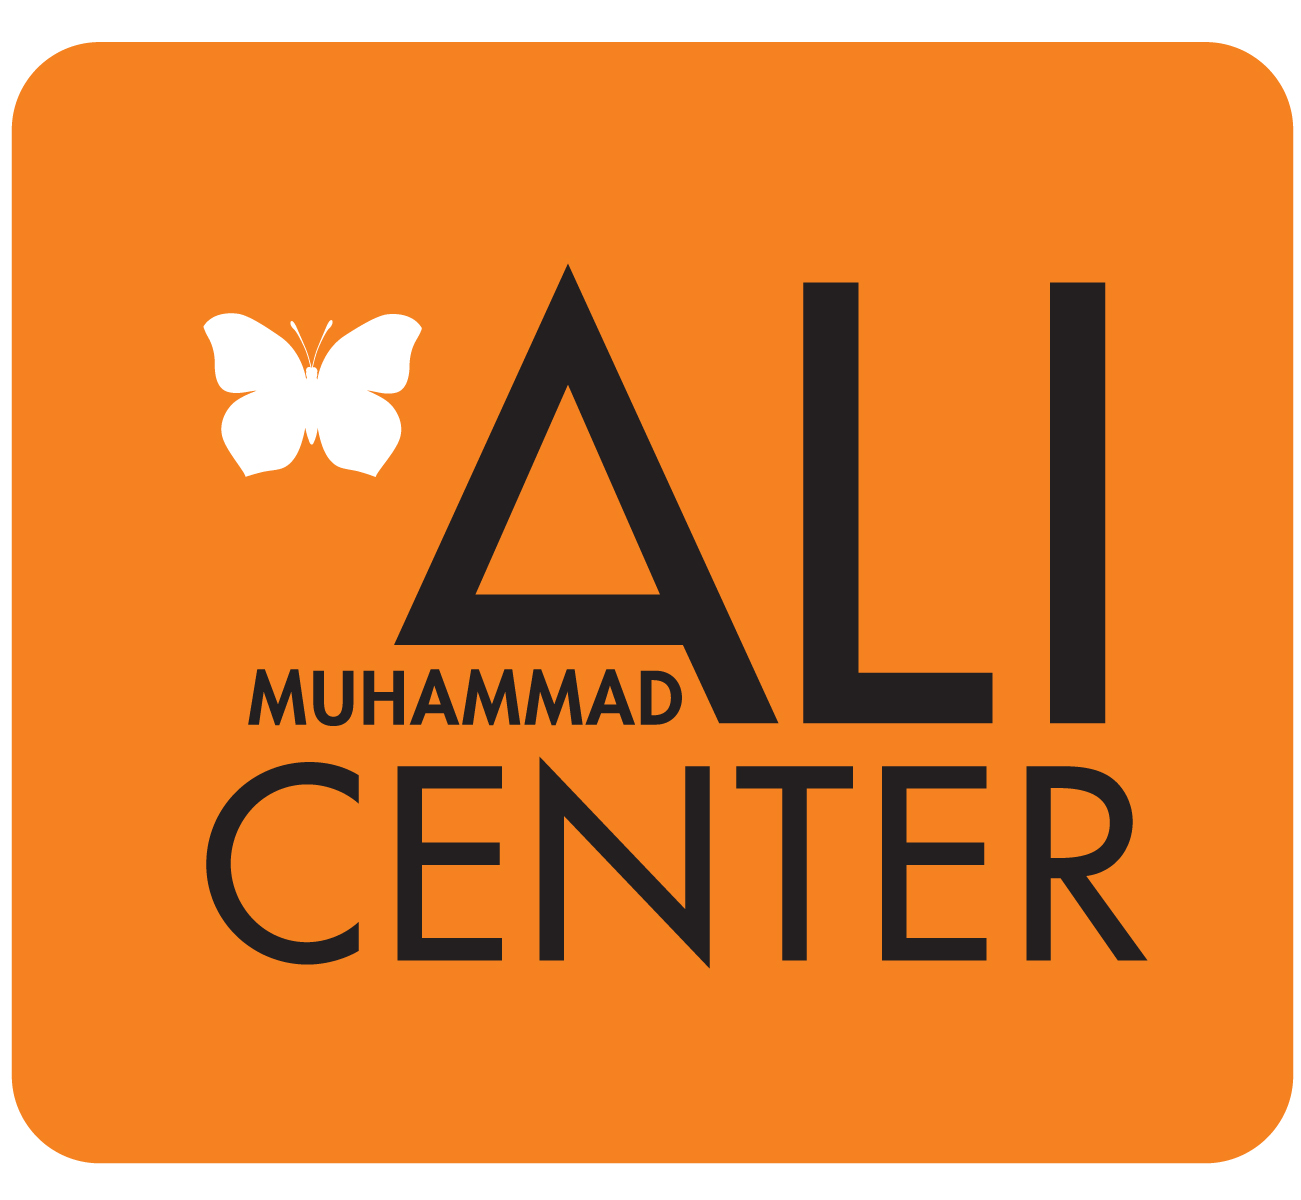 Muhammad Ali Center | Be Great :: Do Great Things